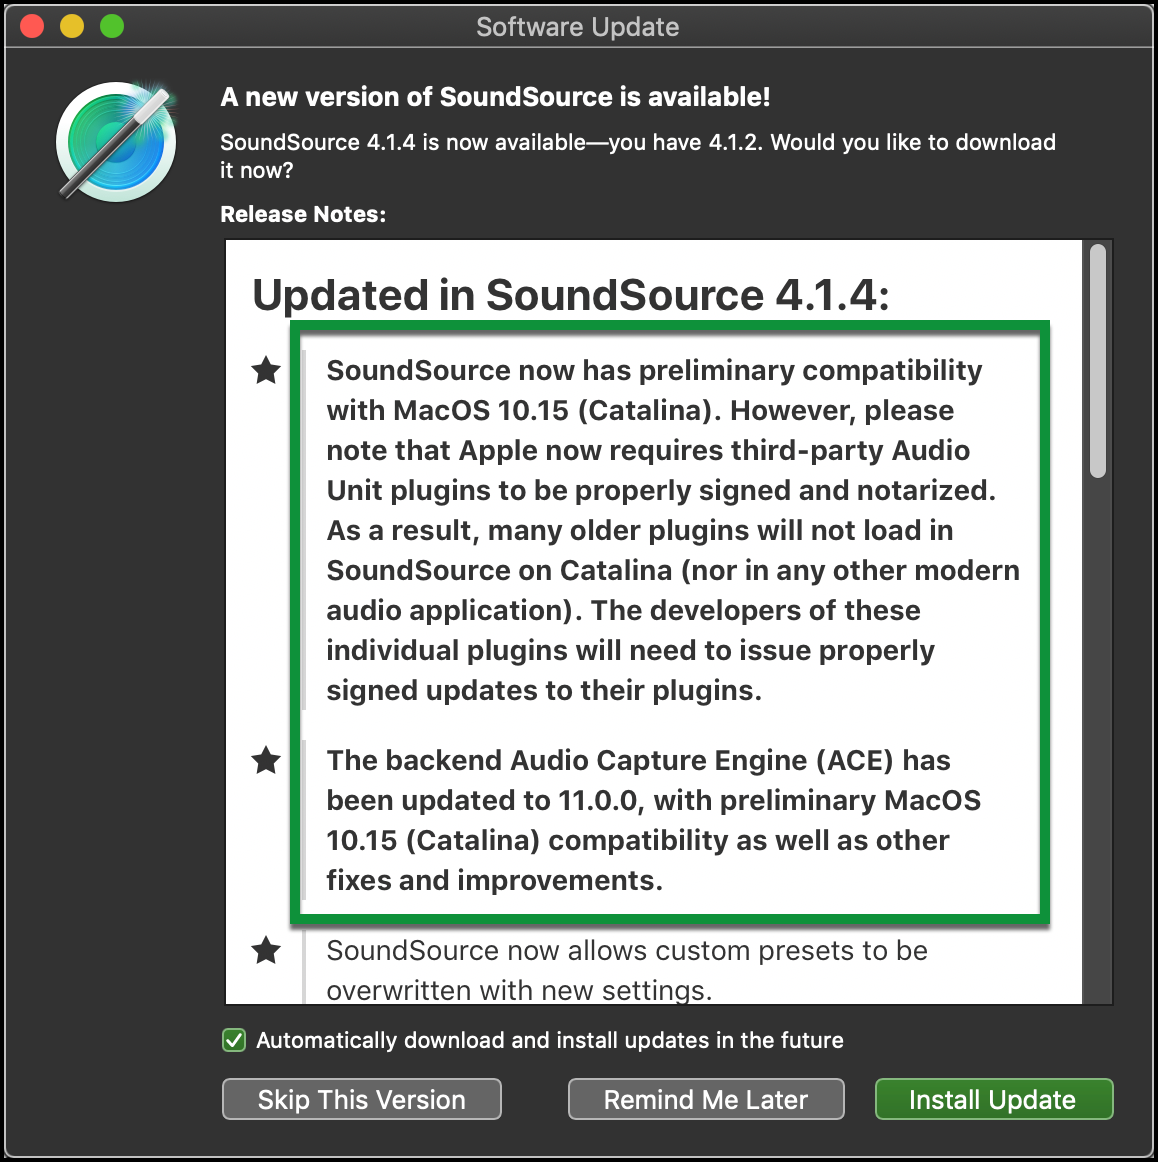 SoundSource Update